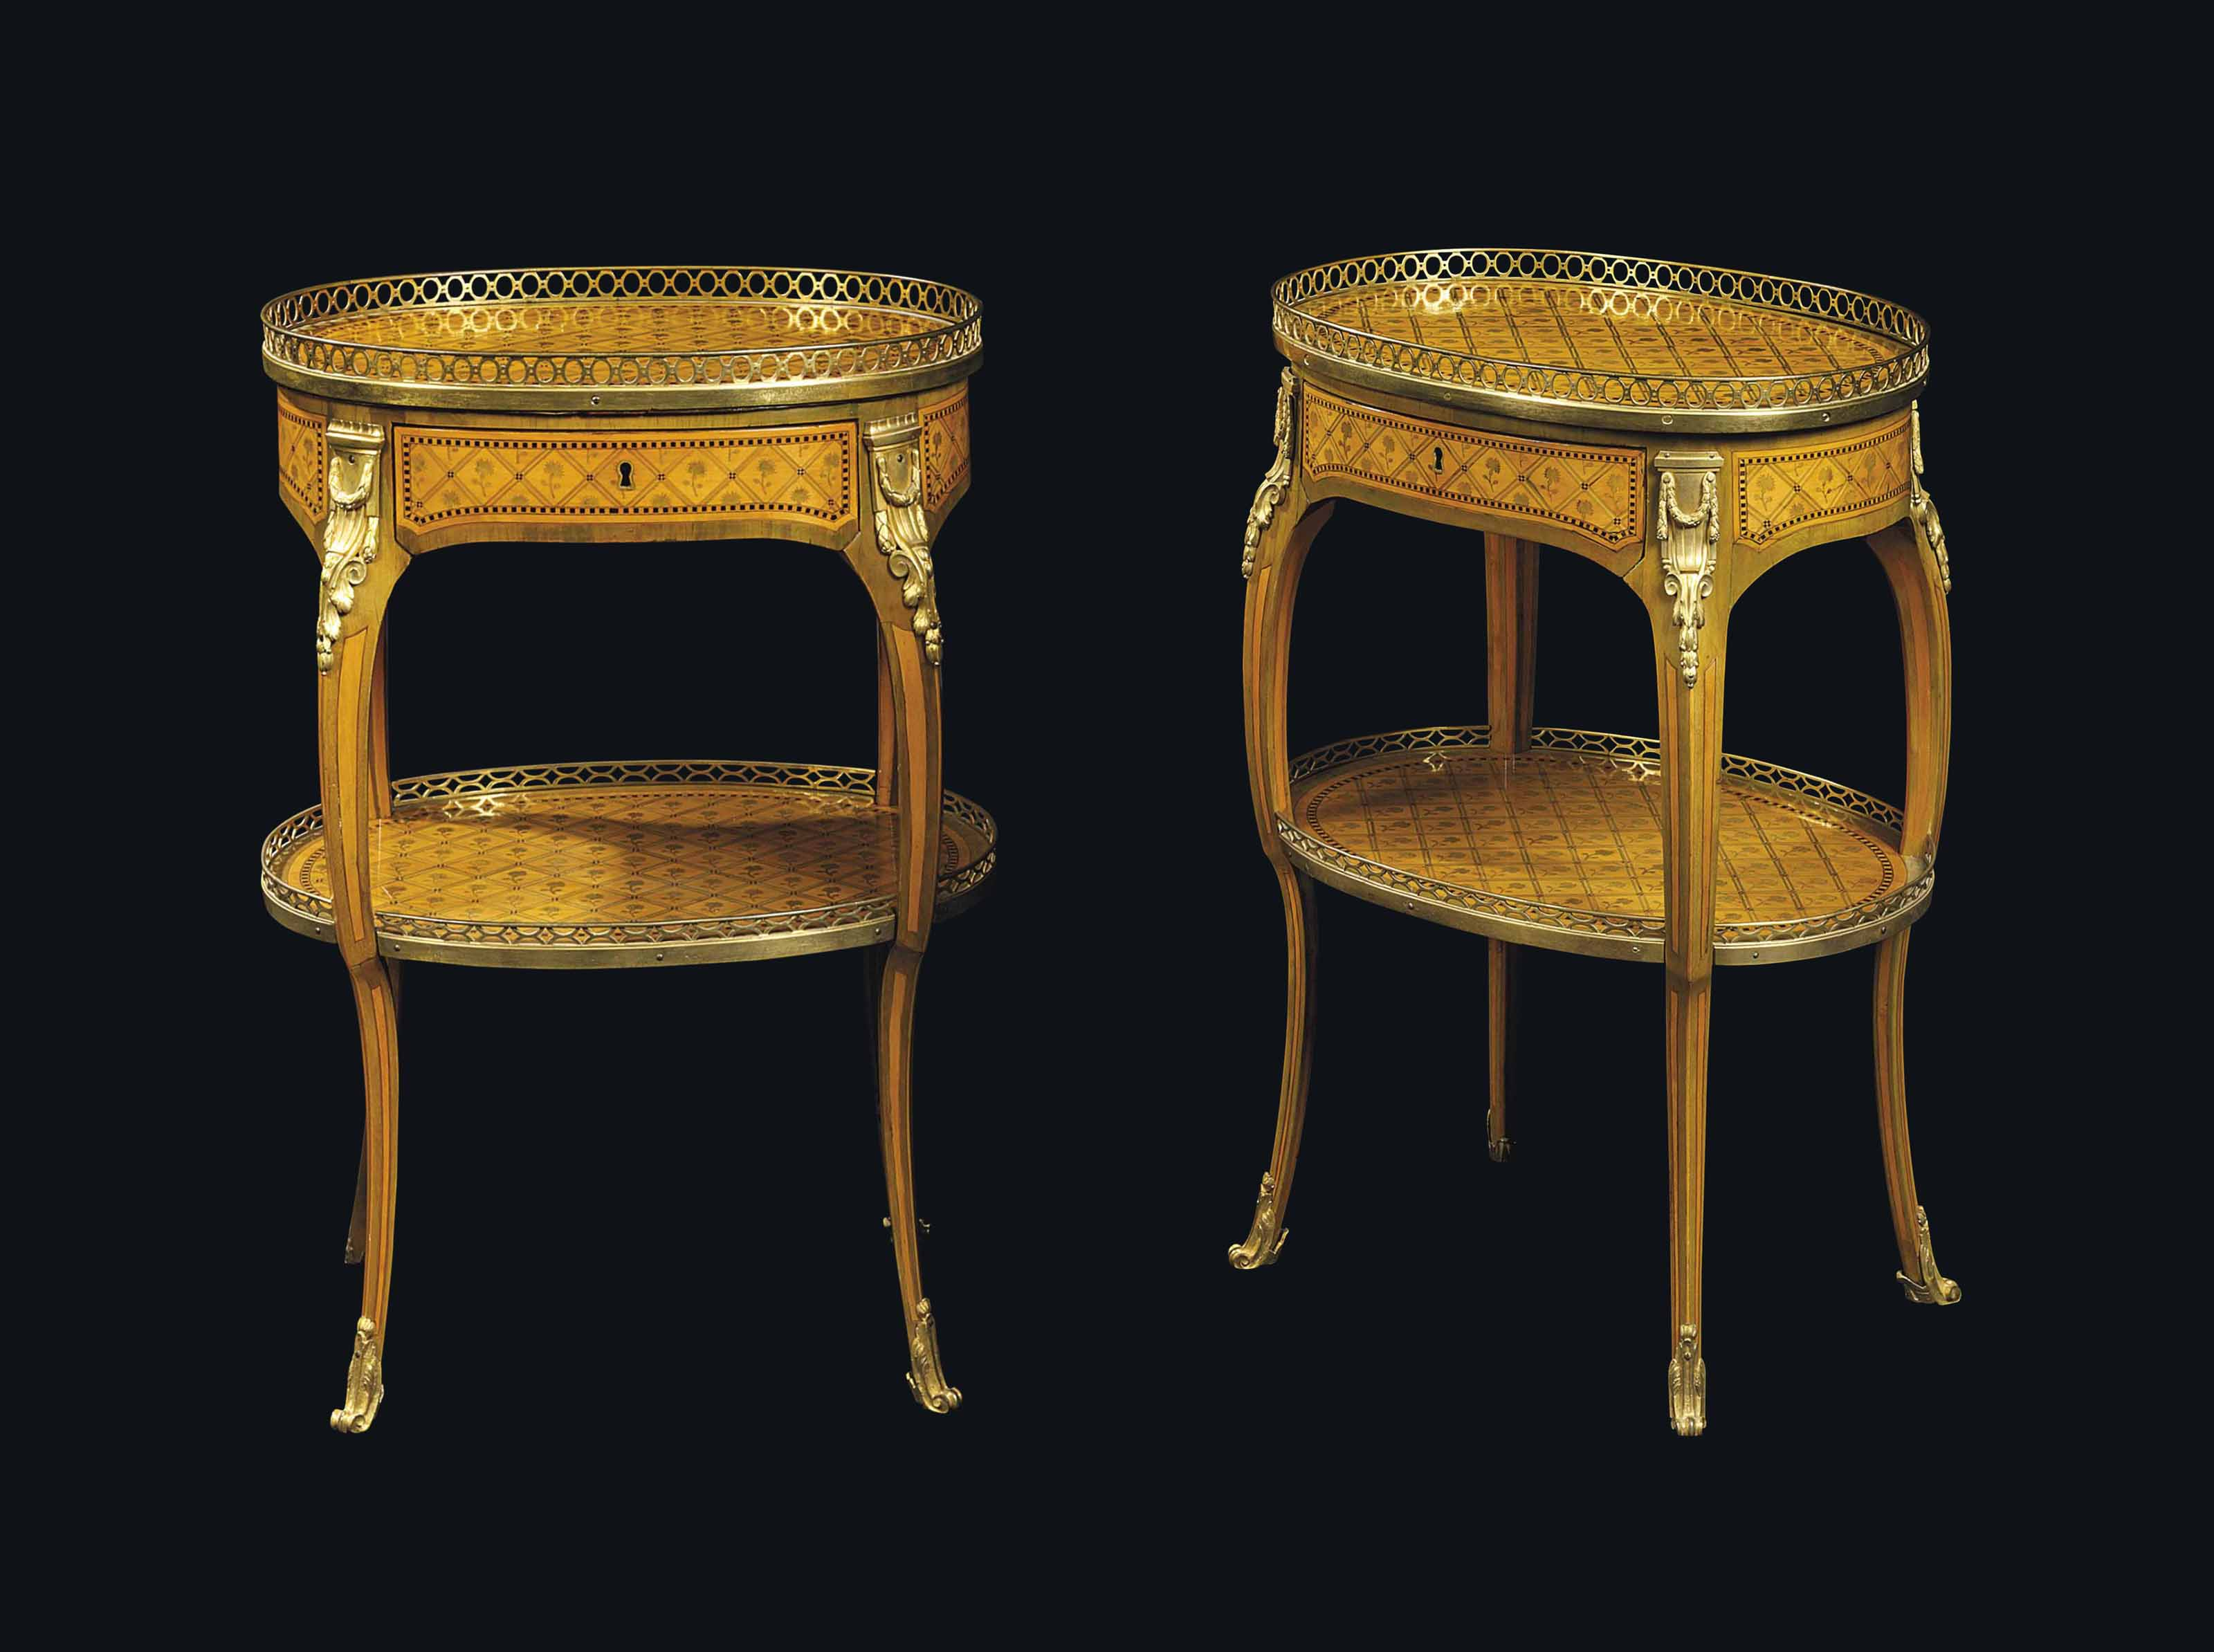 A NEAR PAIR OF LATE LOUIS XV ORMOLU-MOUNTED GREEN-STAINED SYCAMORE, HOLLY, EBONY AND MARQUETRY TABLES A ECRIRE